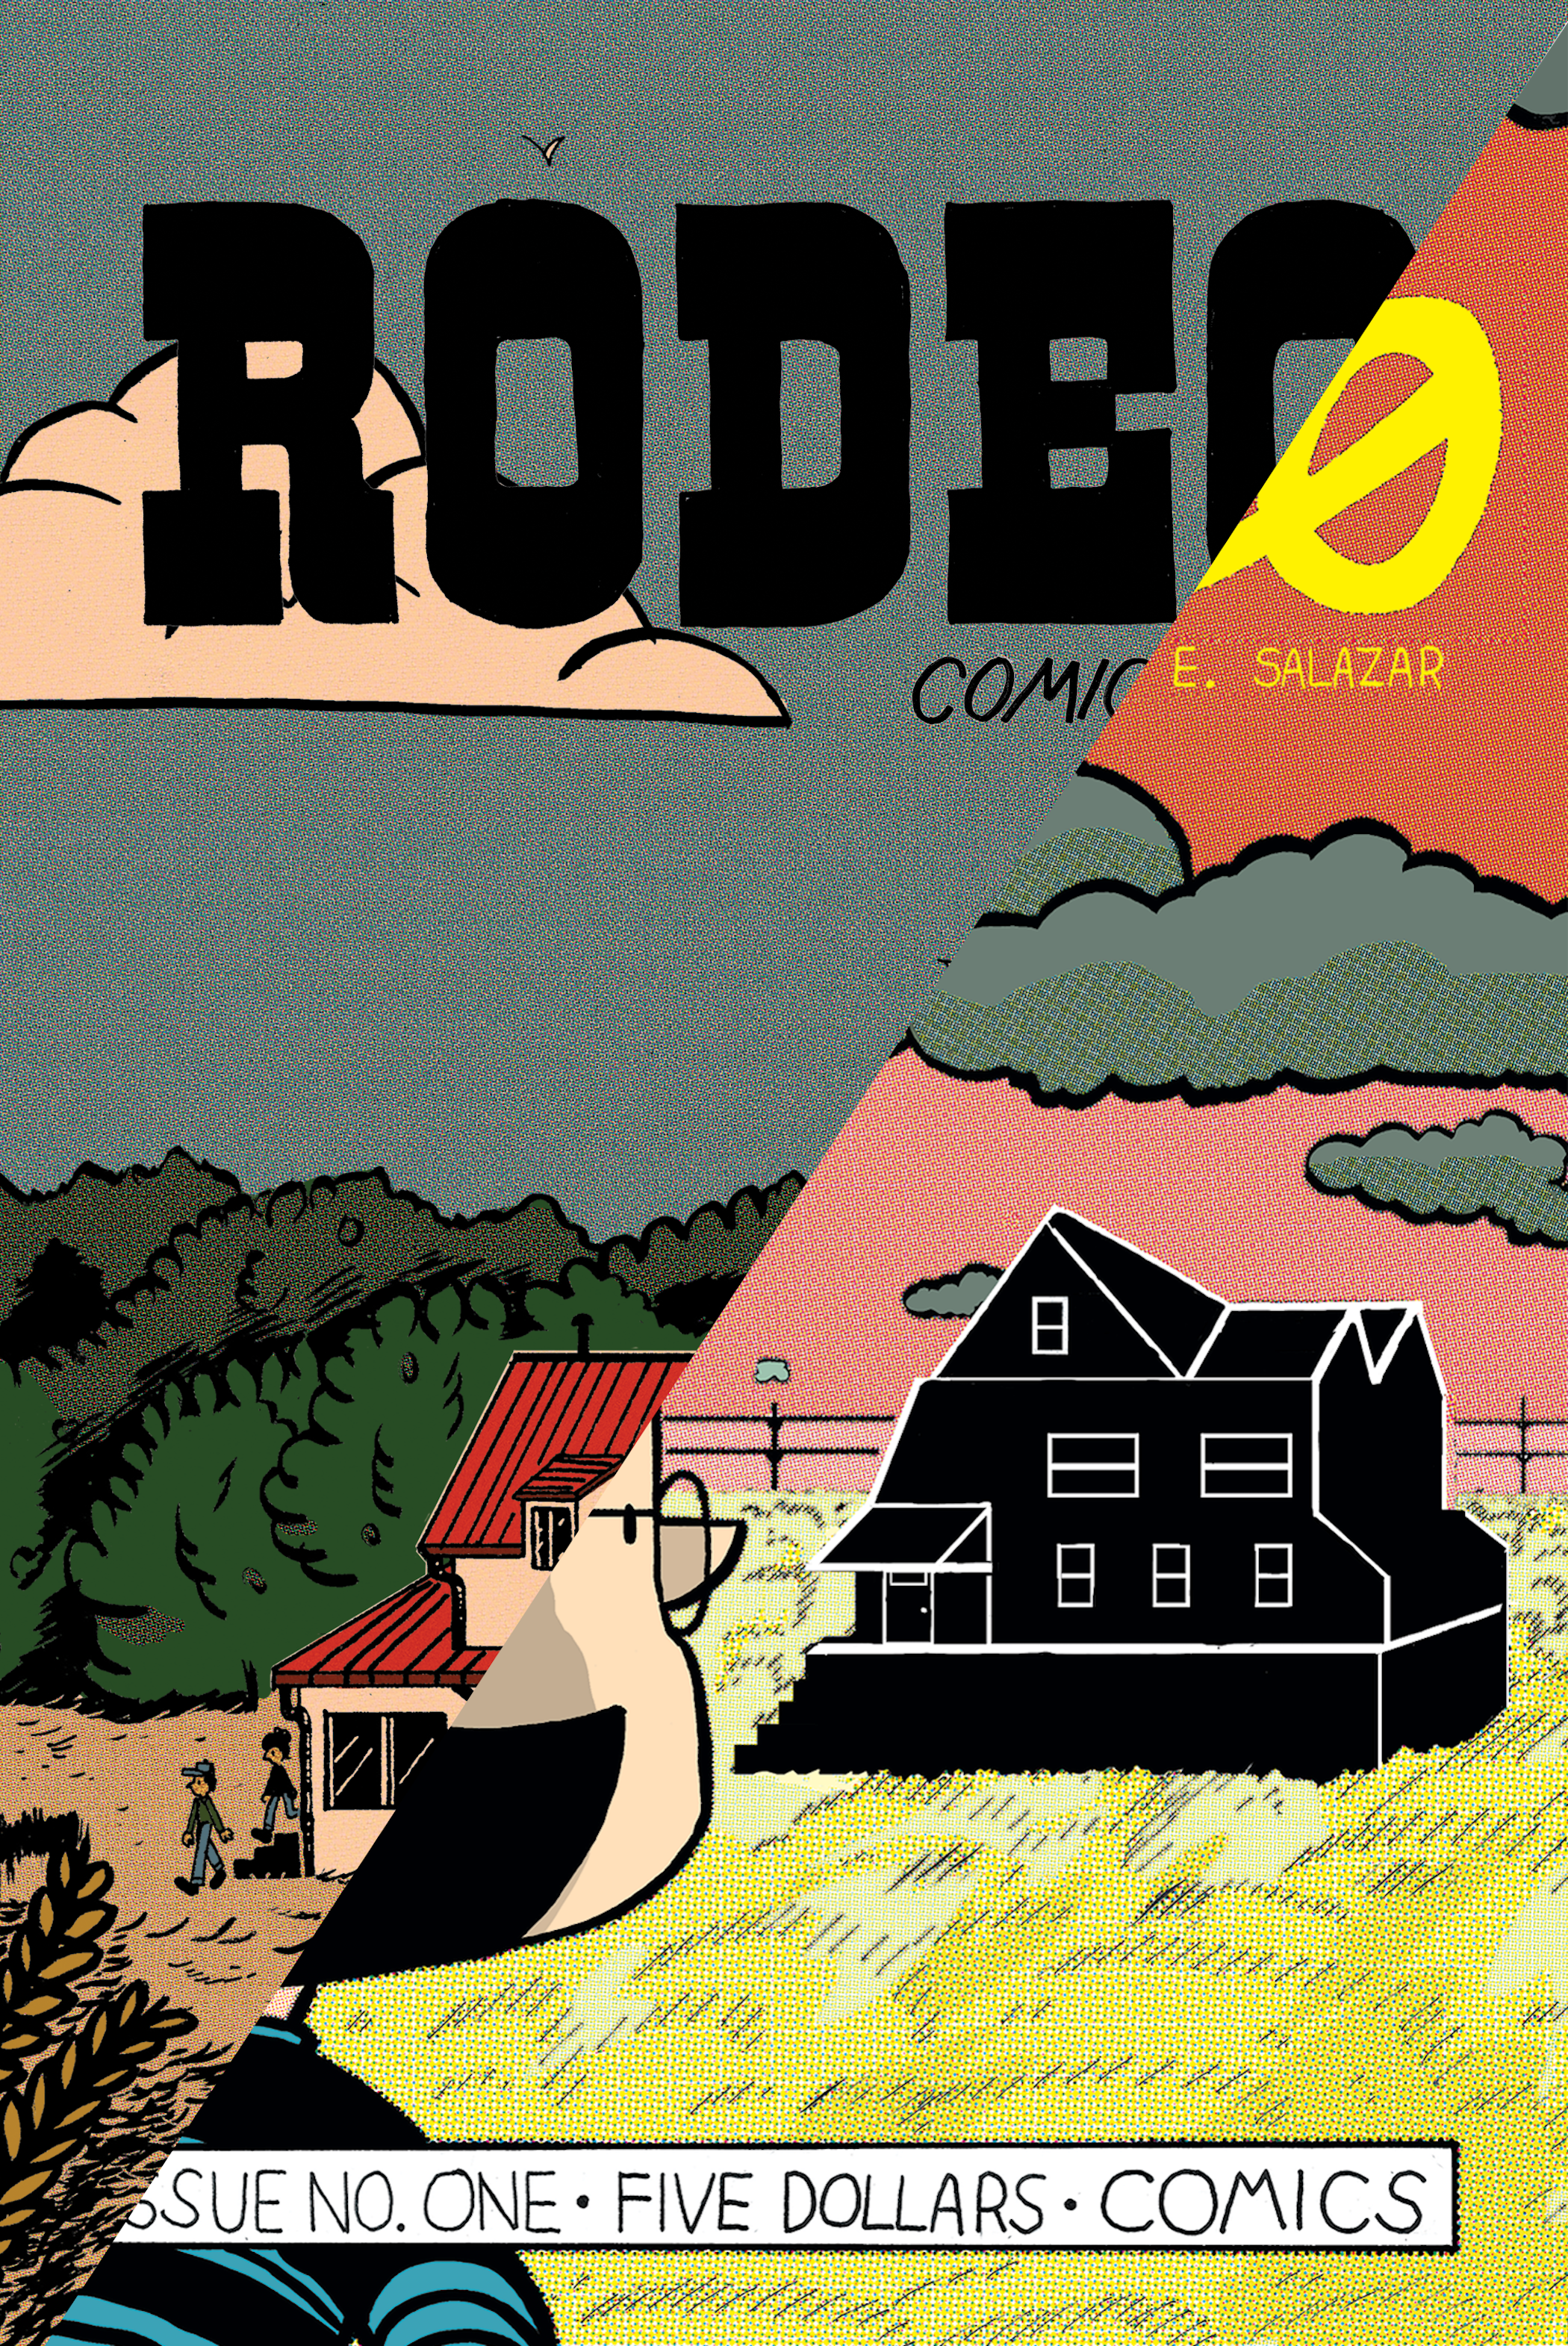 Rodeo 1+2 cover website